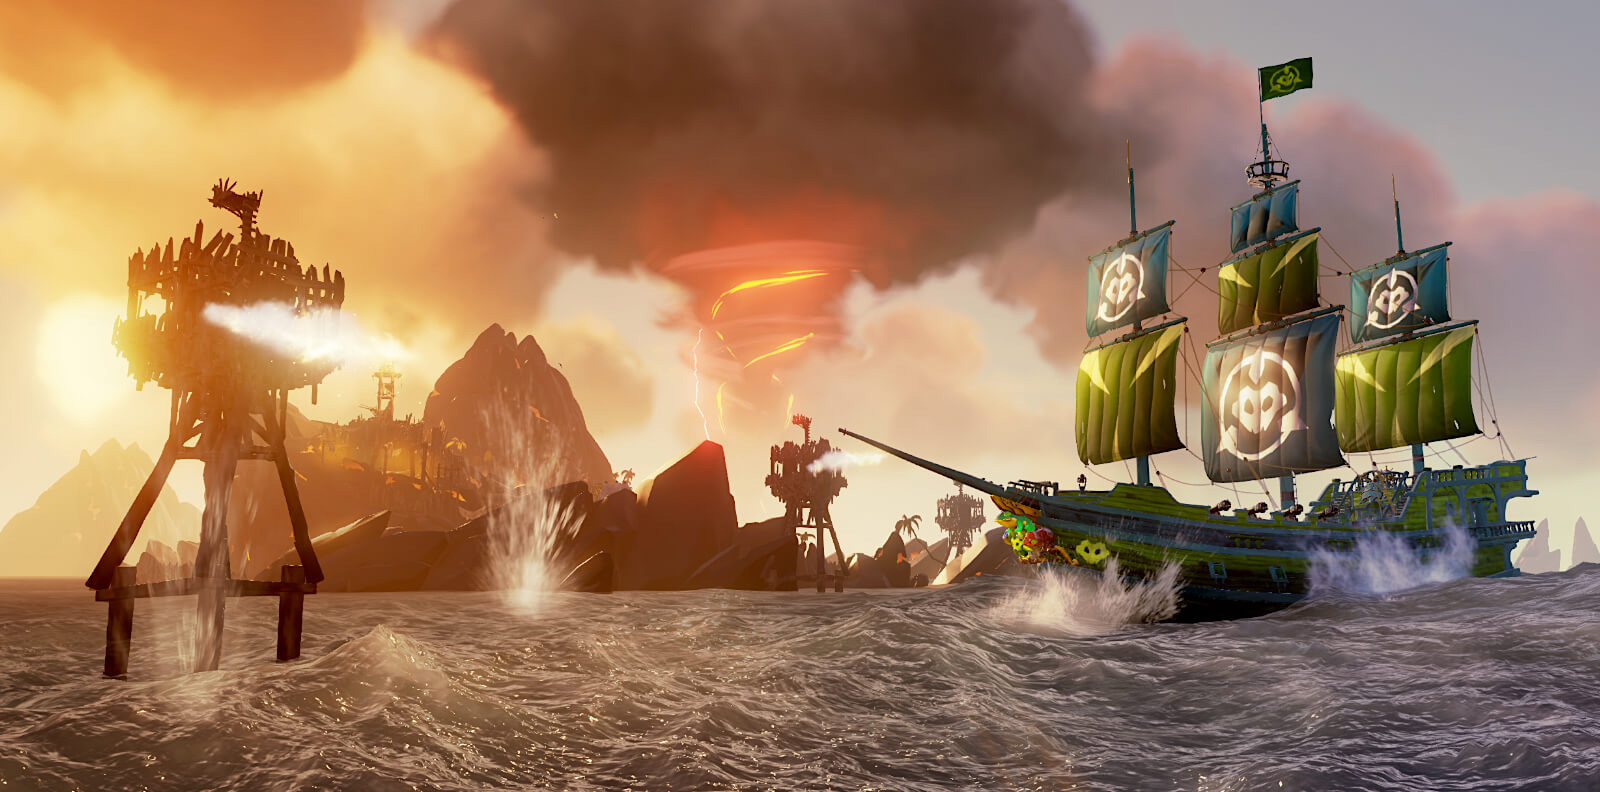 battletoads-boat-sea-of-thieves